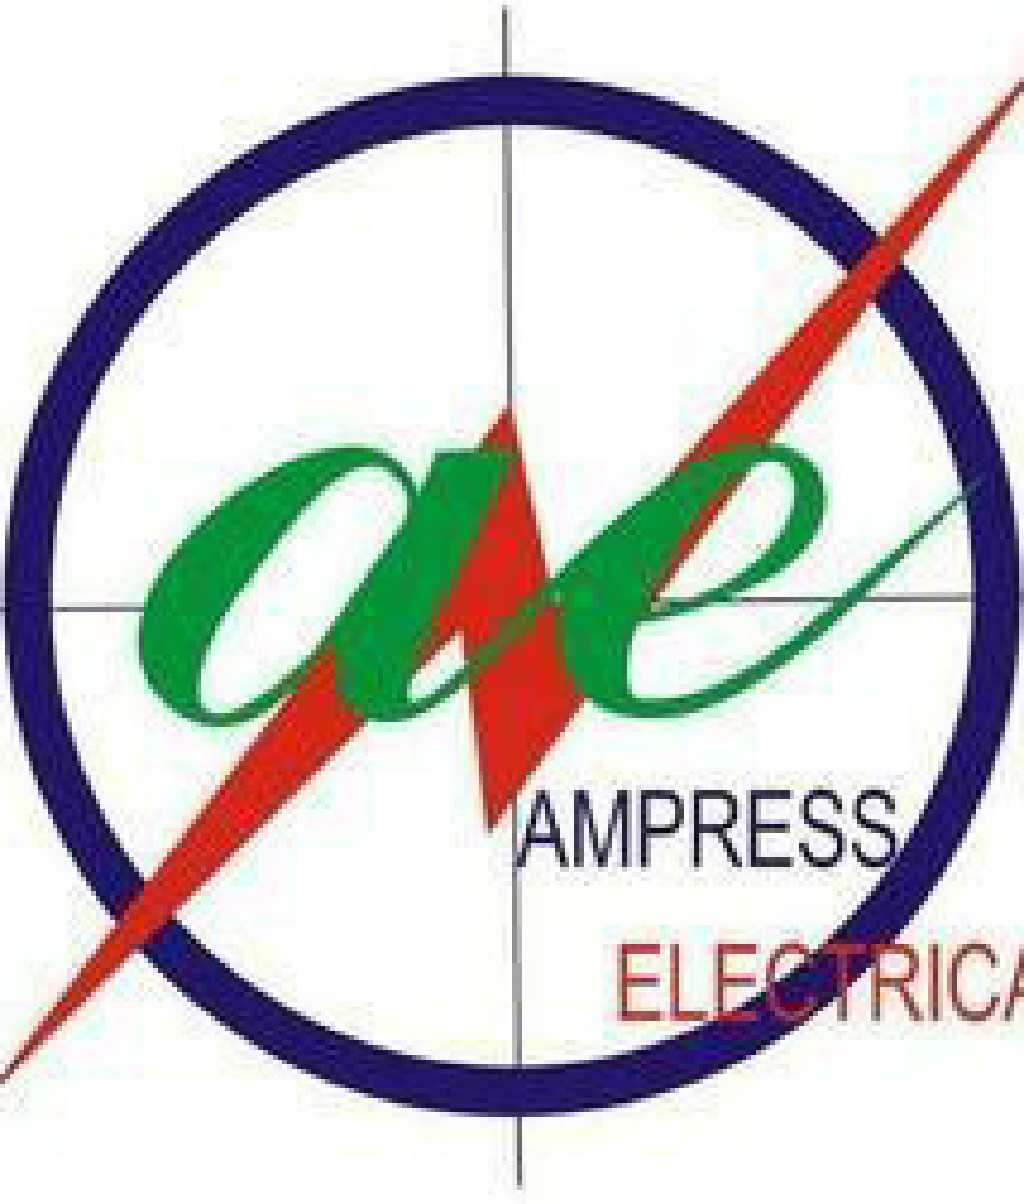 AMPRESS ELECTRICAL ENGINEERS AND CONSULTANTS